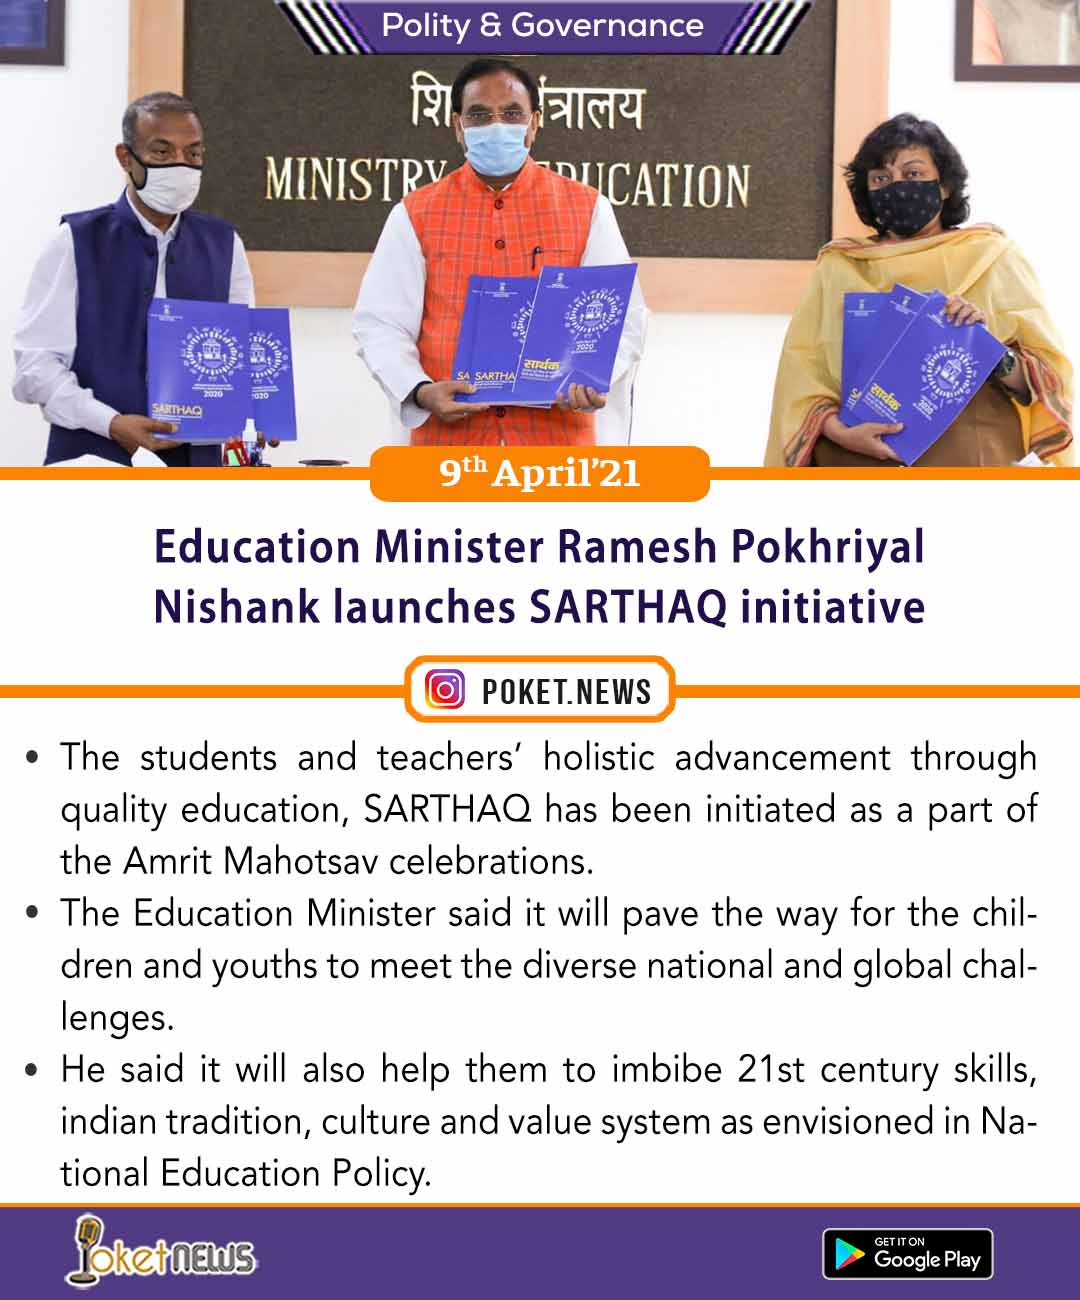 Education Minister Ramesh Pokhriyal Nishank launches SARTHAQ initiative